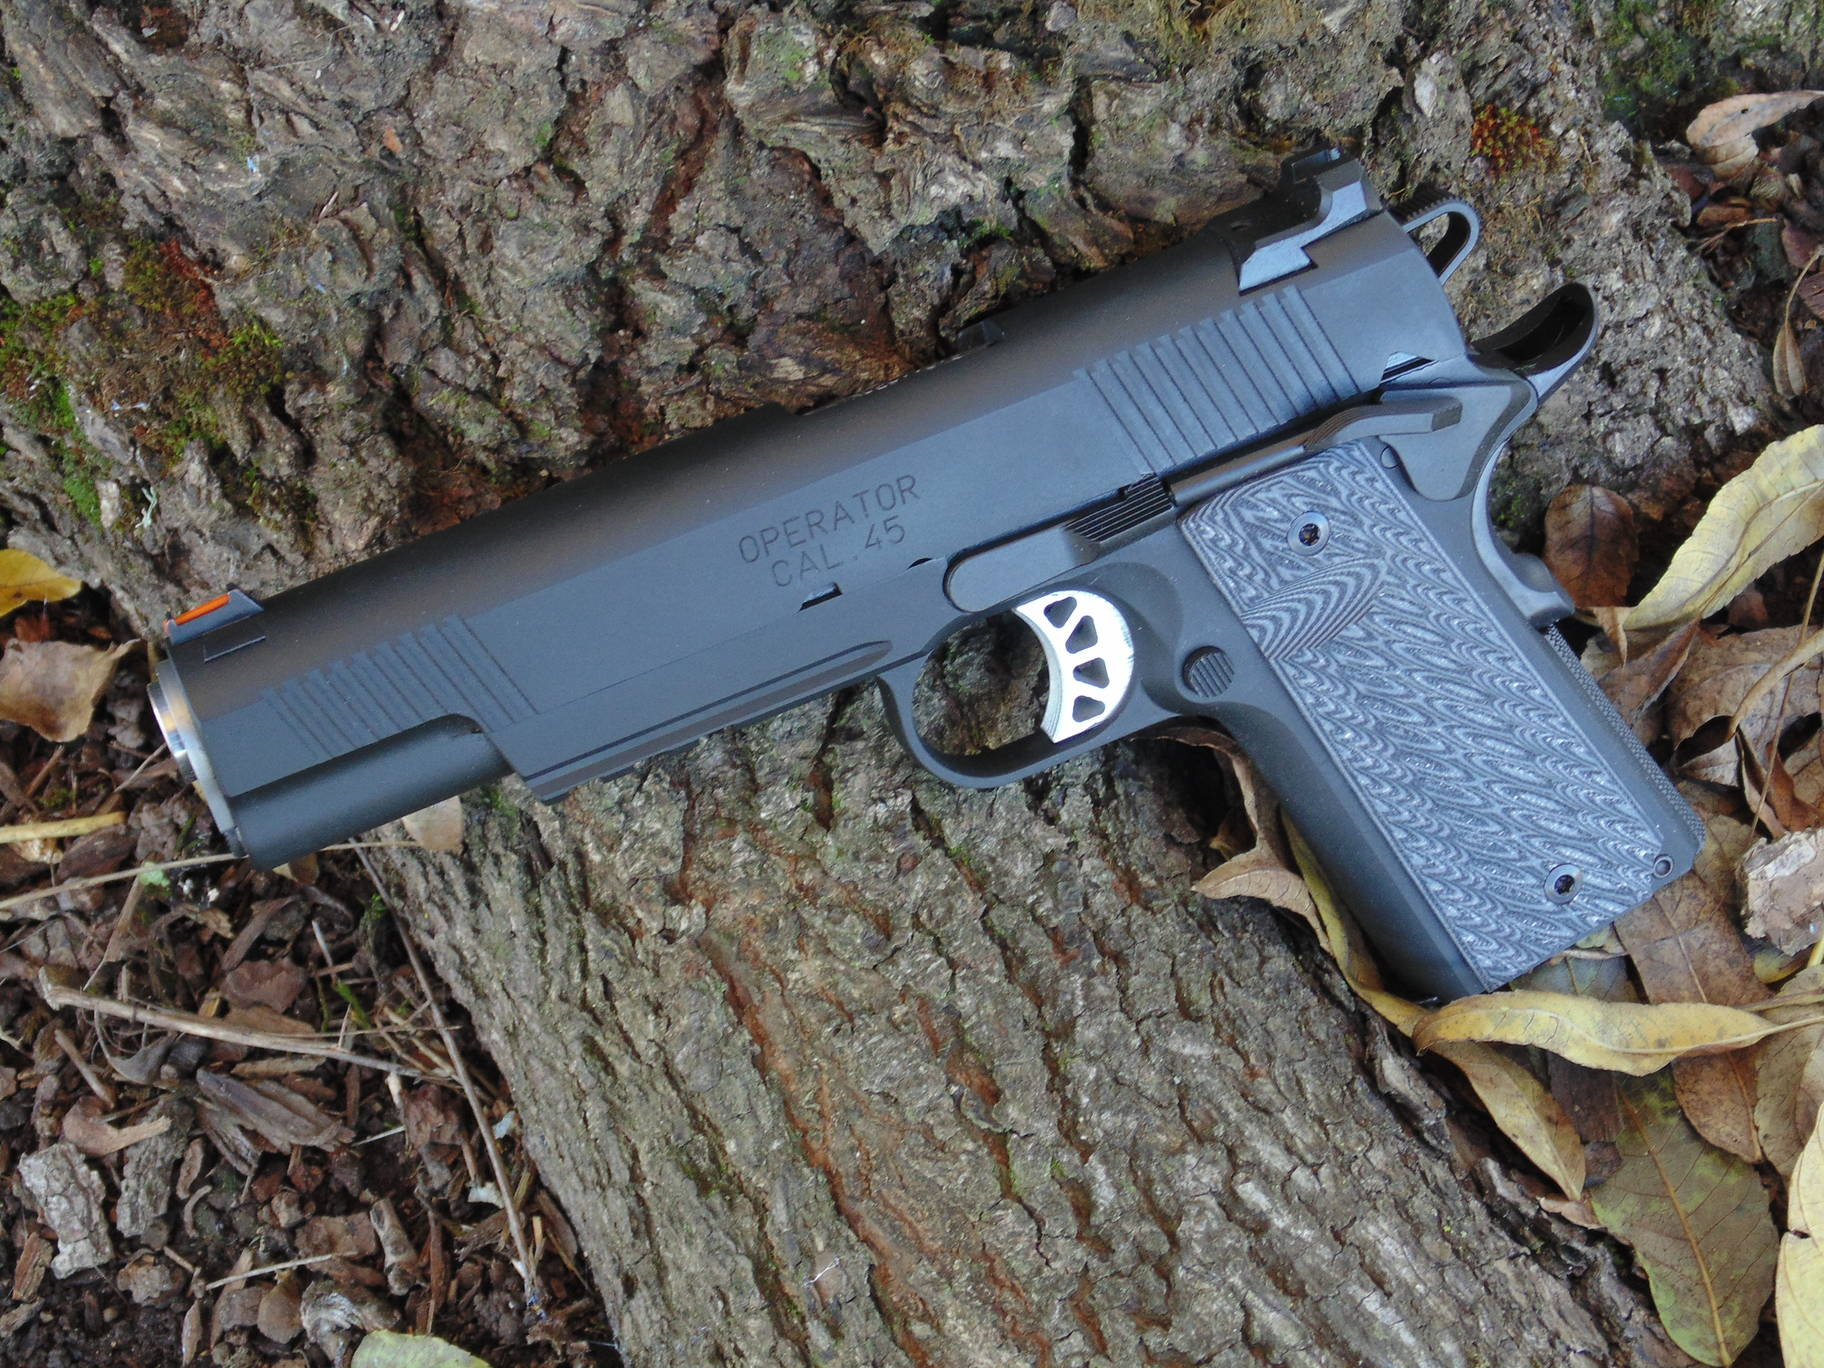 Springfield Armory Range Officer Elite Operator 1911, by Pat